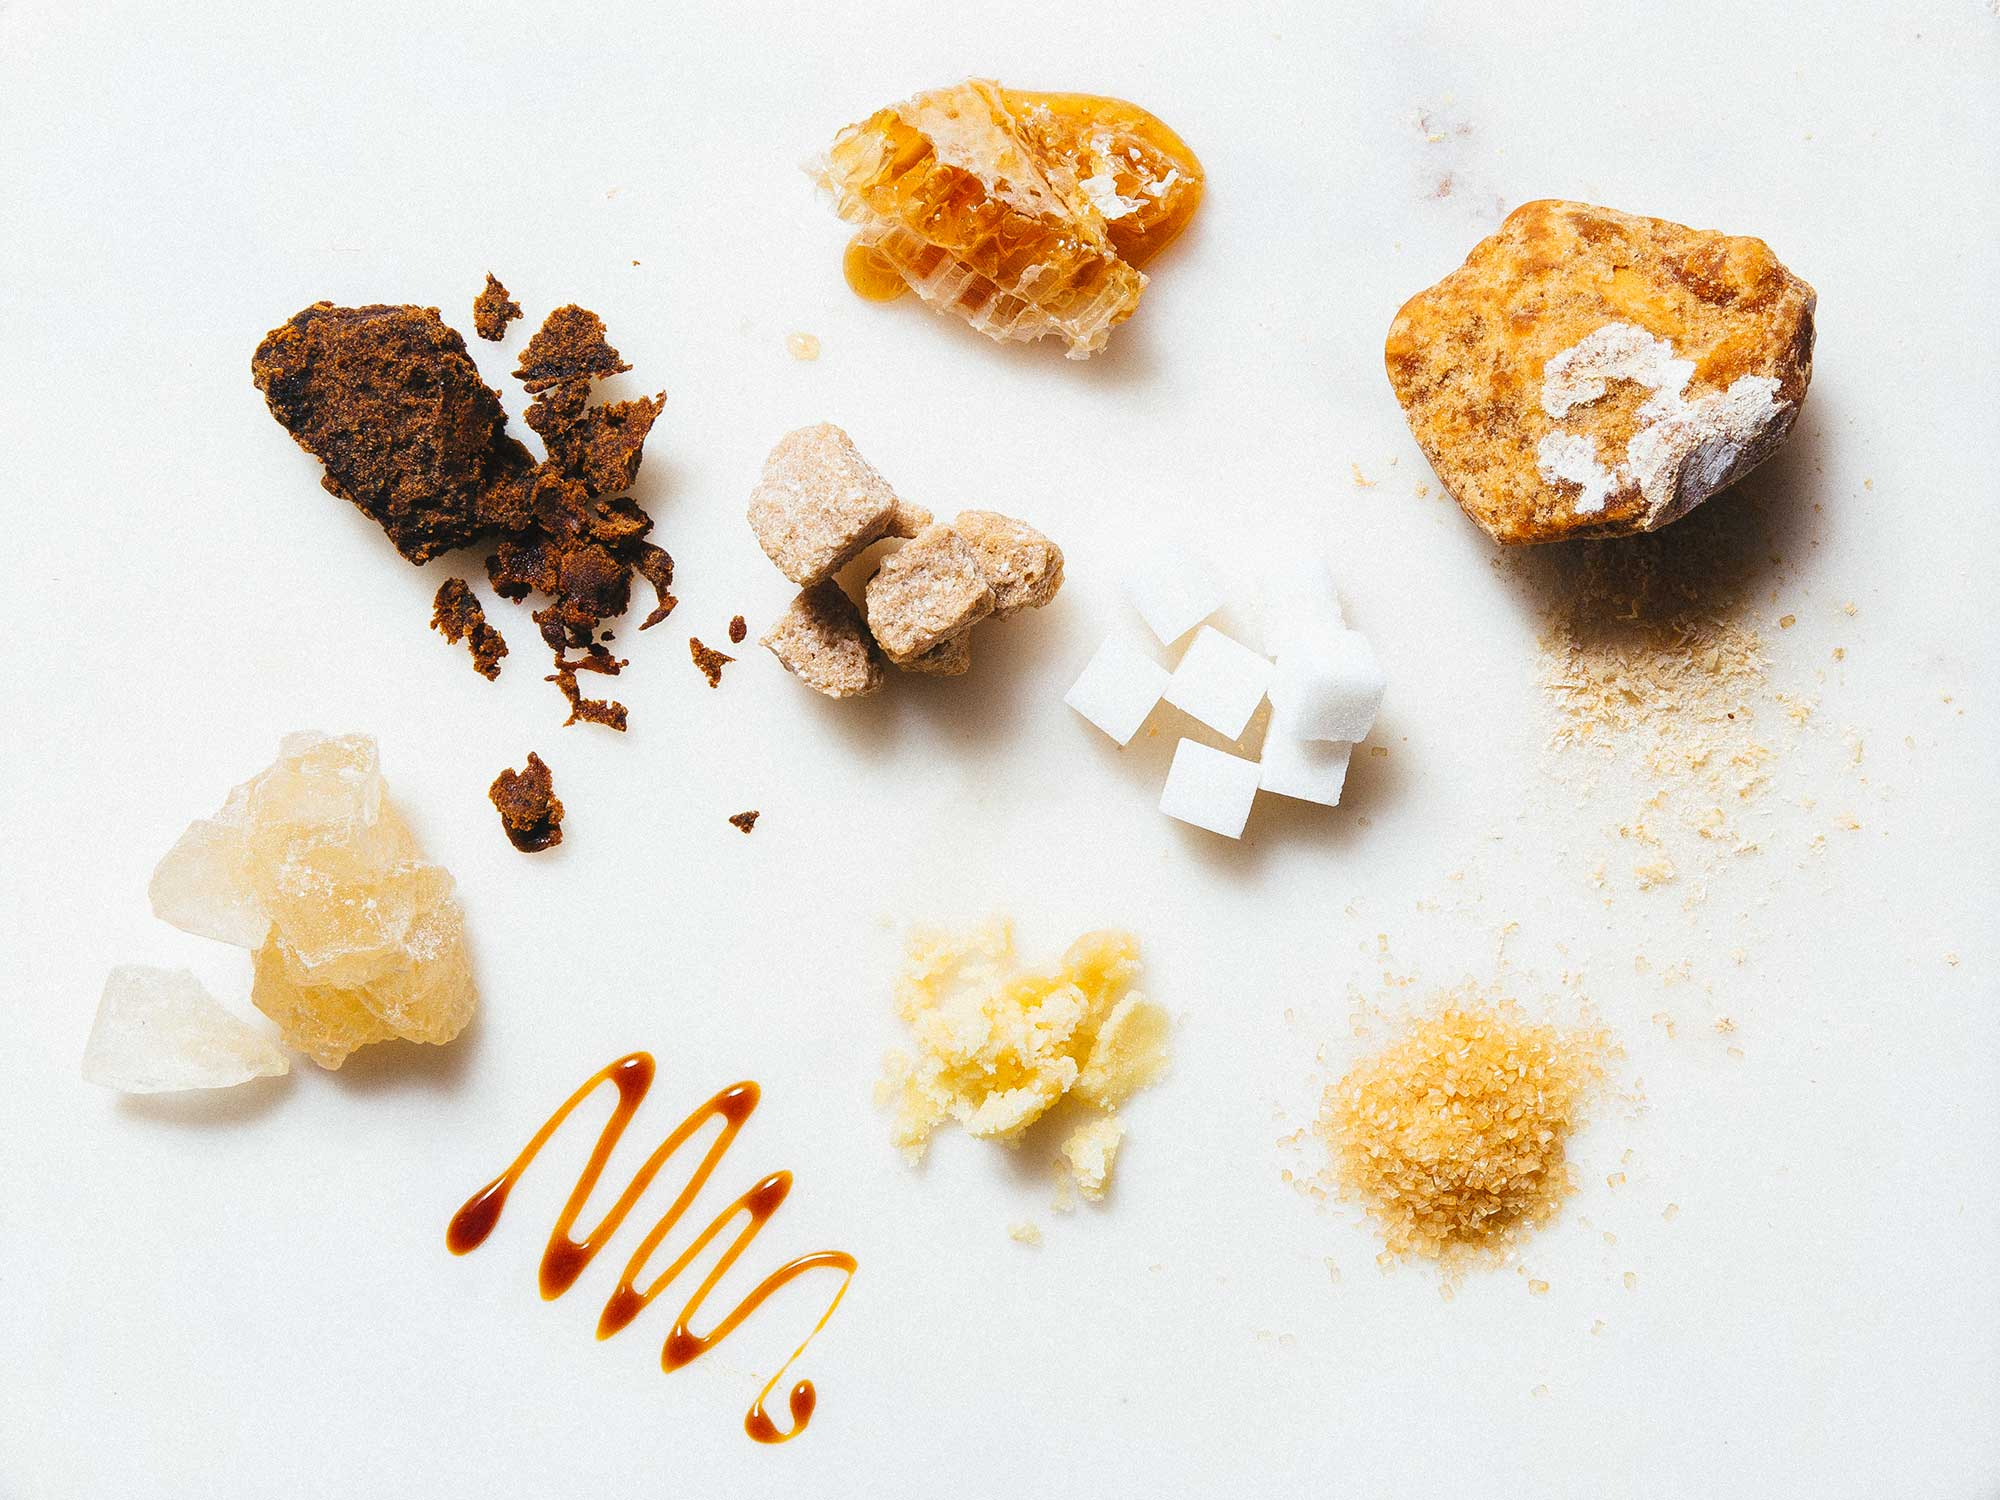 The Complete Guide to Sugar Around the World